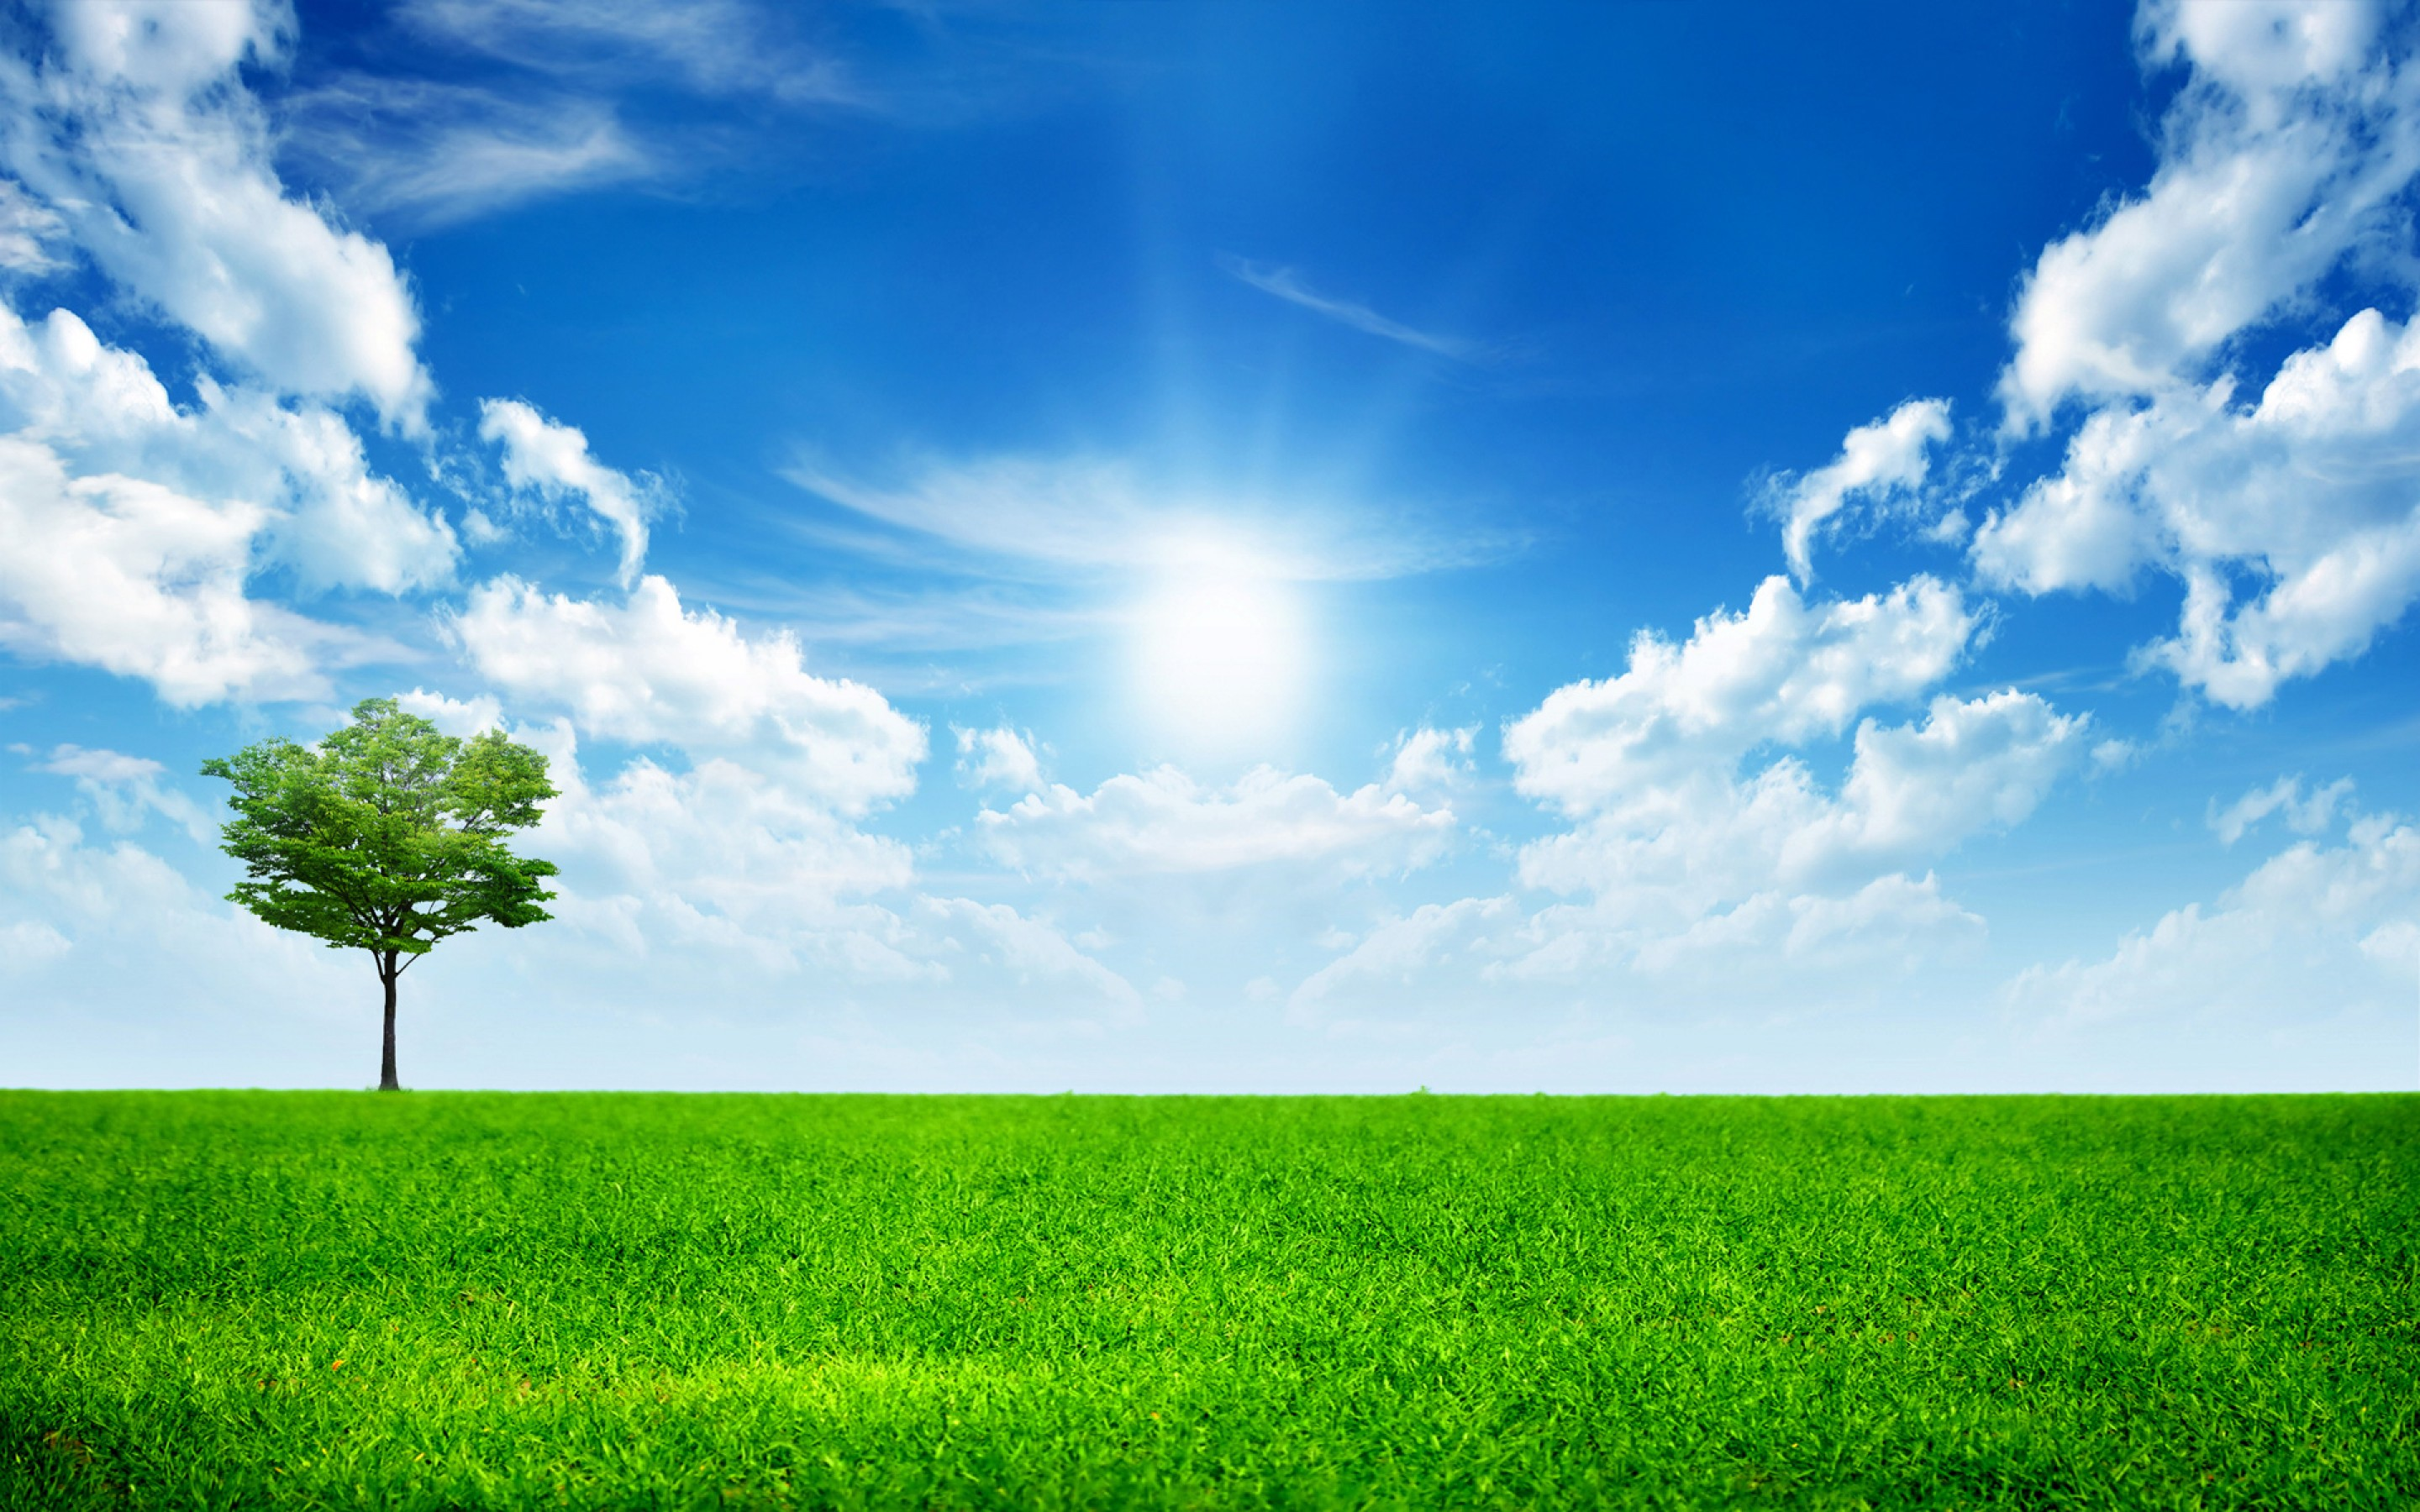 Nature Background images6